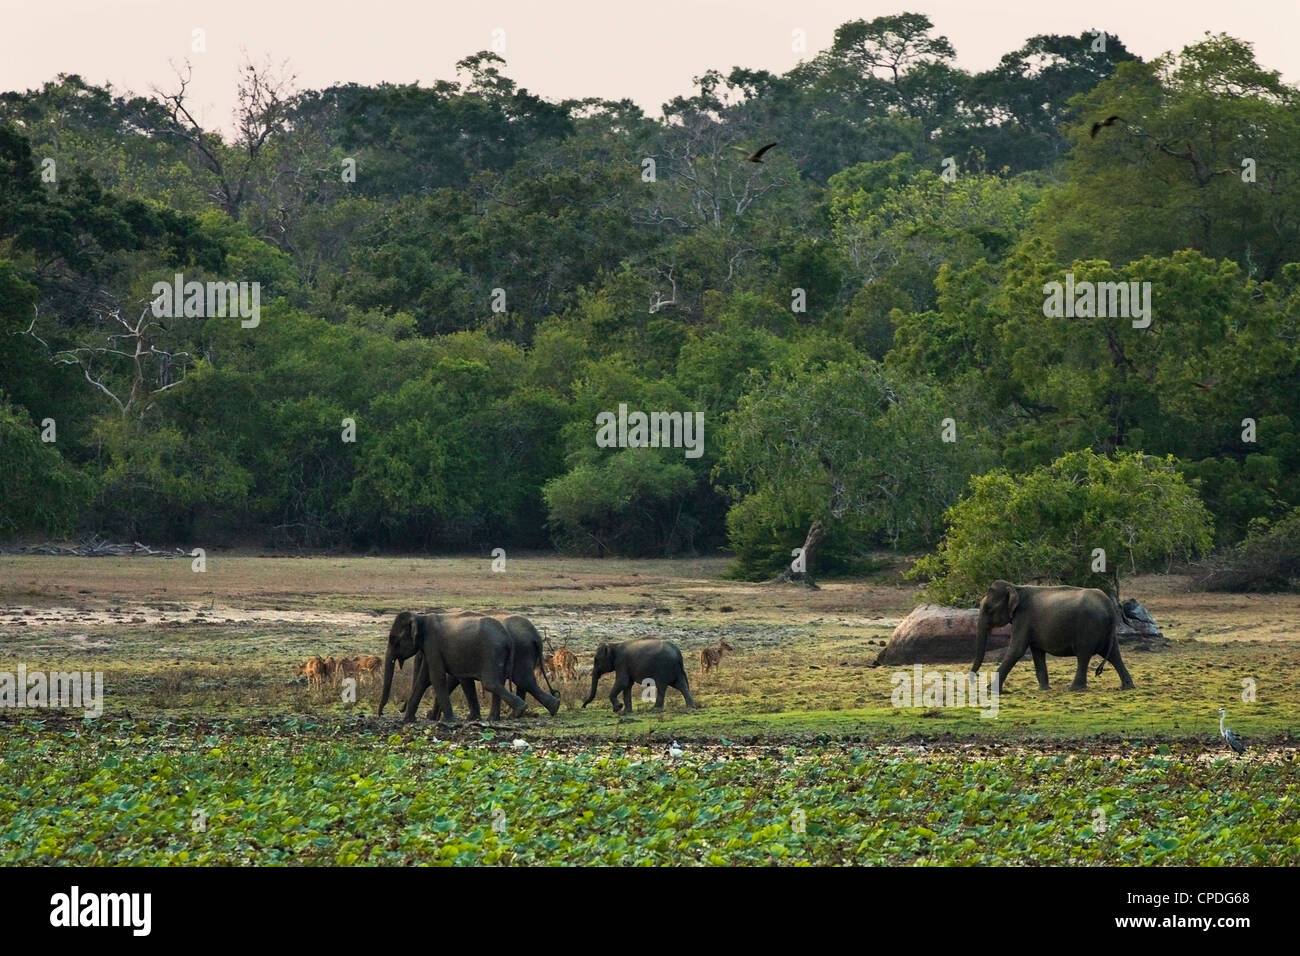 Elephants and spotted deer at twilight in Kumana National Park, formerly Yala East, Kumana, Eastern Province, Sri - Stock Image